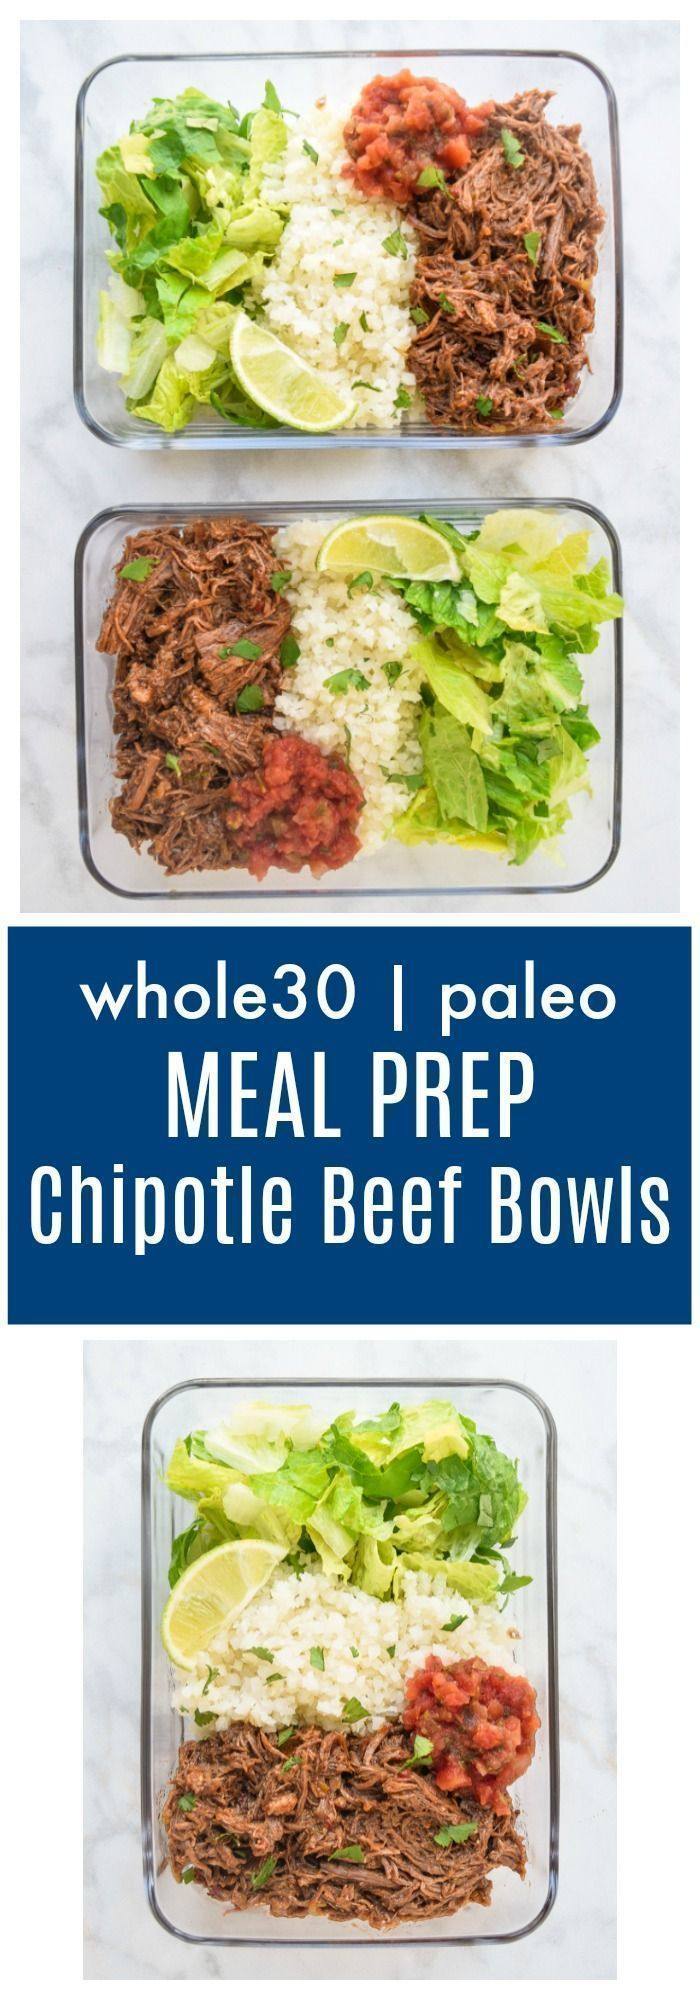 Prep Chipotle Beef Bowls (Whole30 Paleo) - lunch has never been tastier with these meal prep chipotle beef bowls!  Just like your favorite Mexican takeout and Whole30 complaint! |